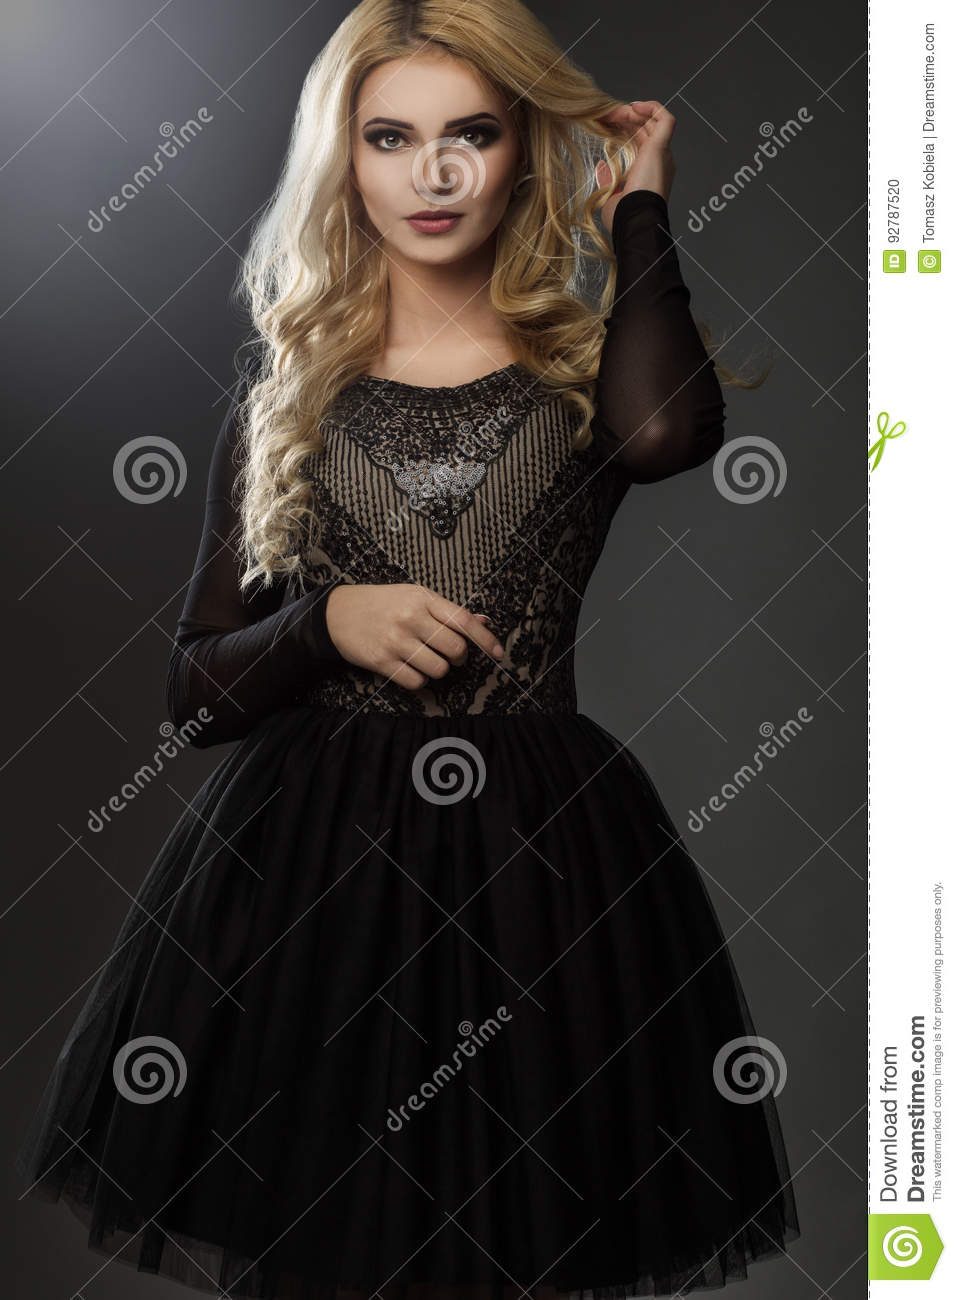 Charming model in black, elegant dress.